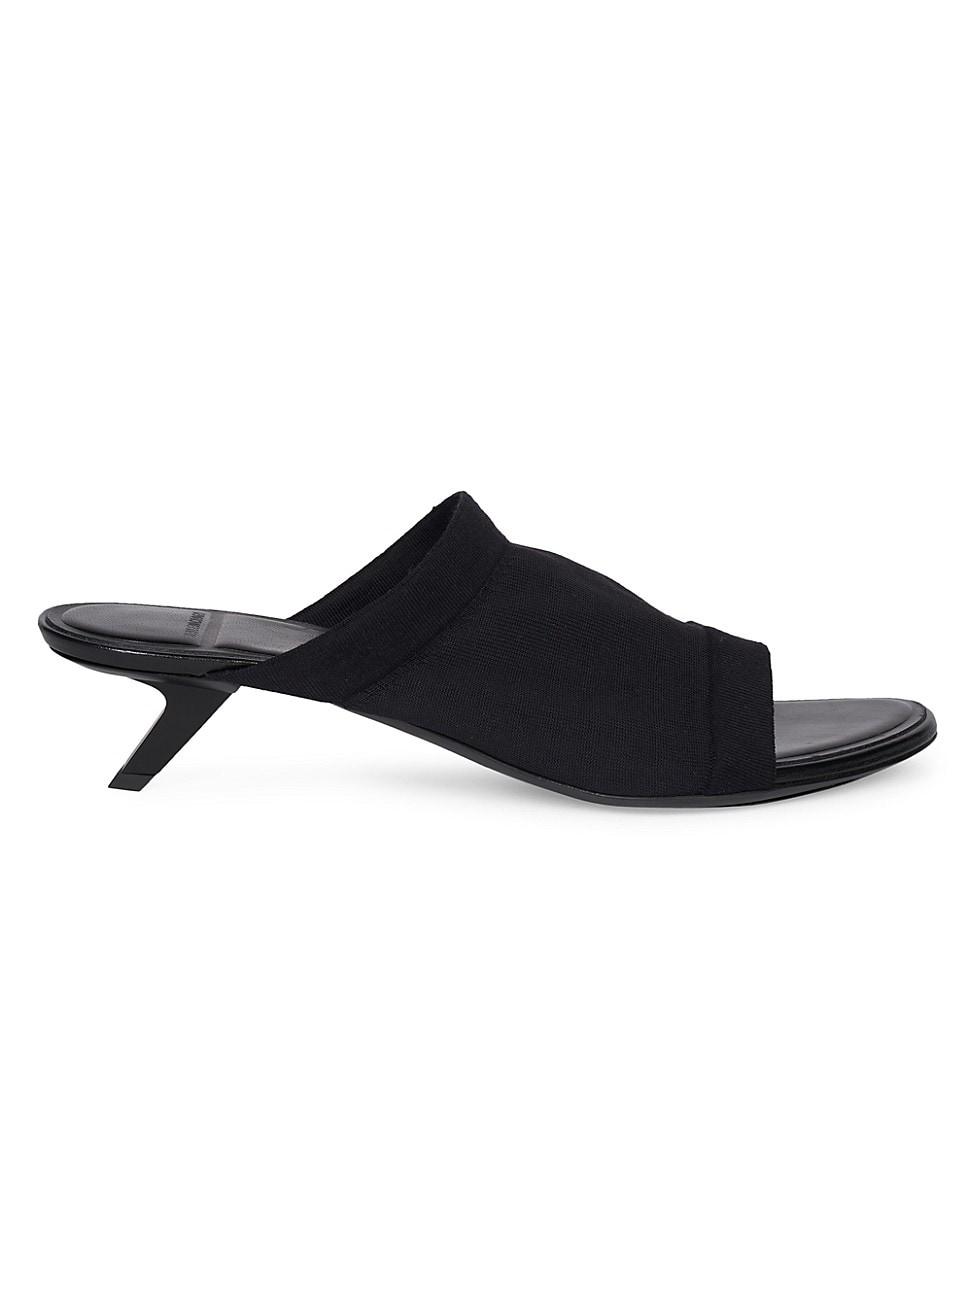 Balenciaga WOMEN'S STRETCH MULES